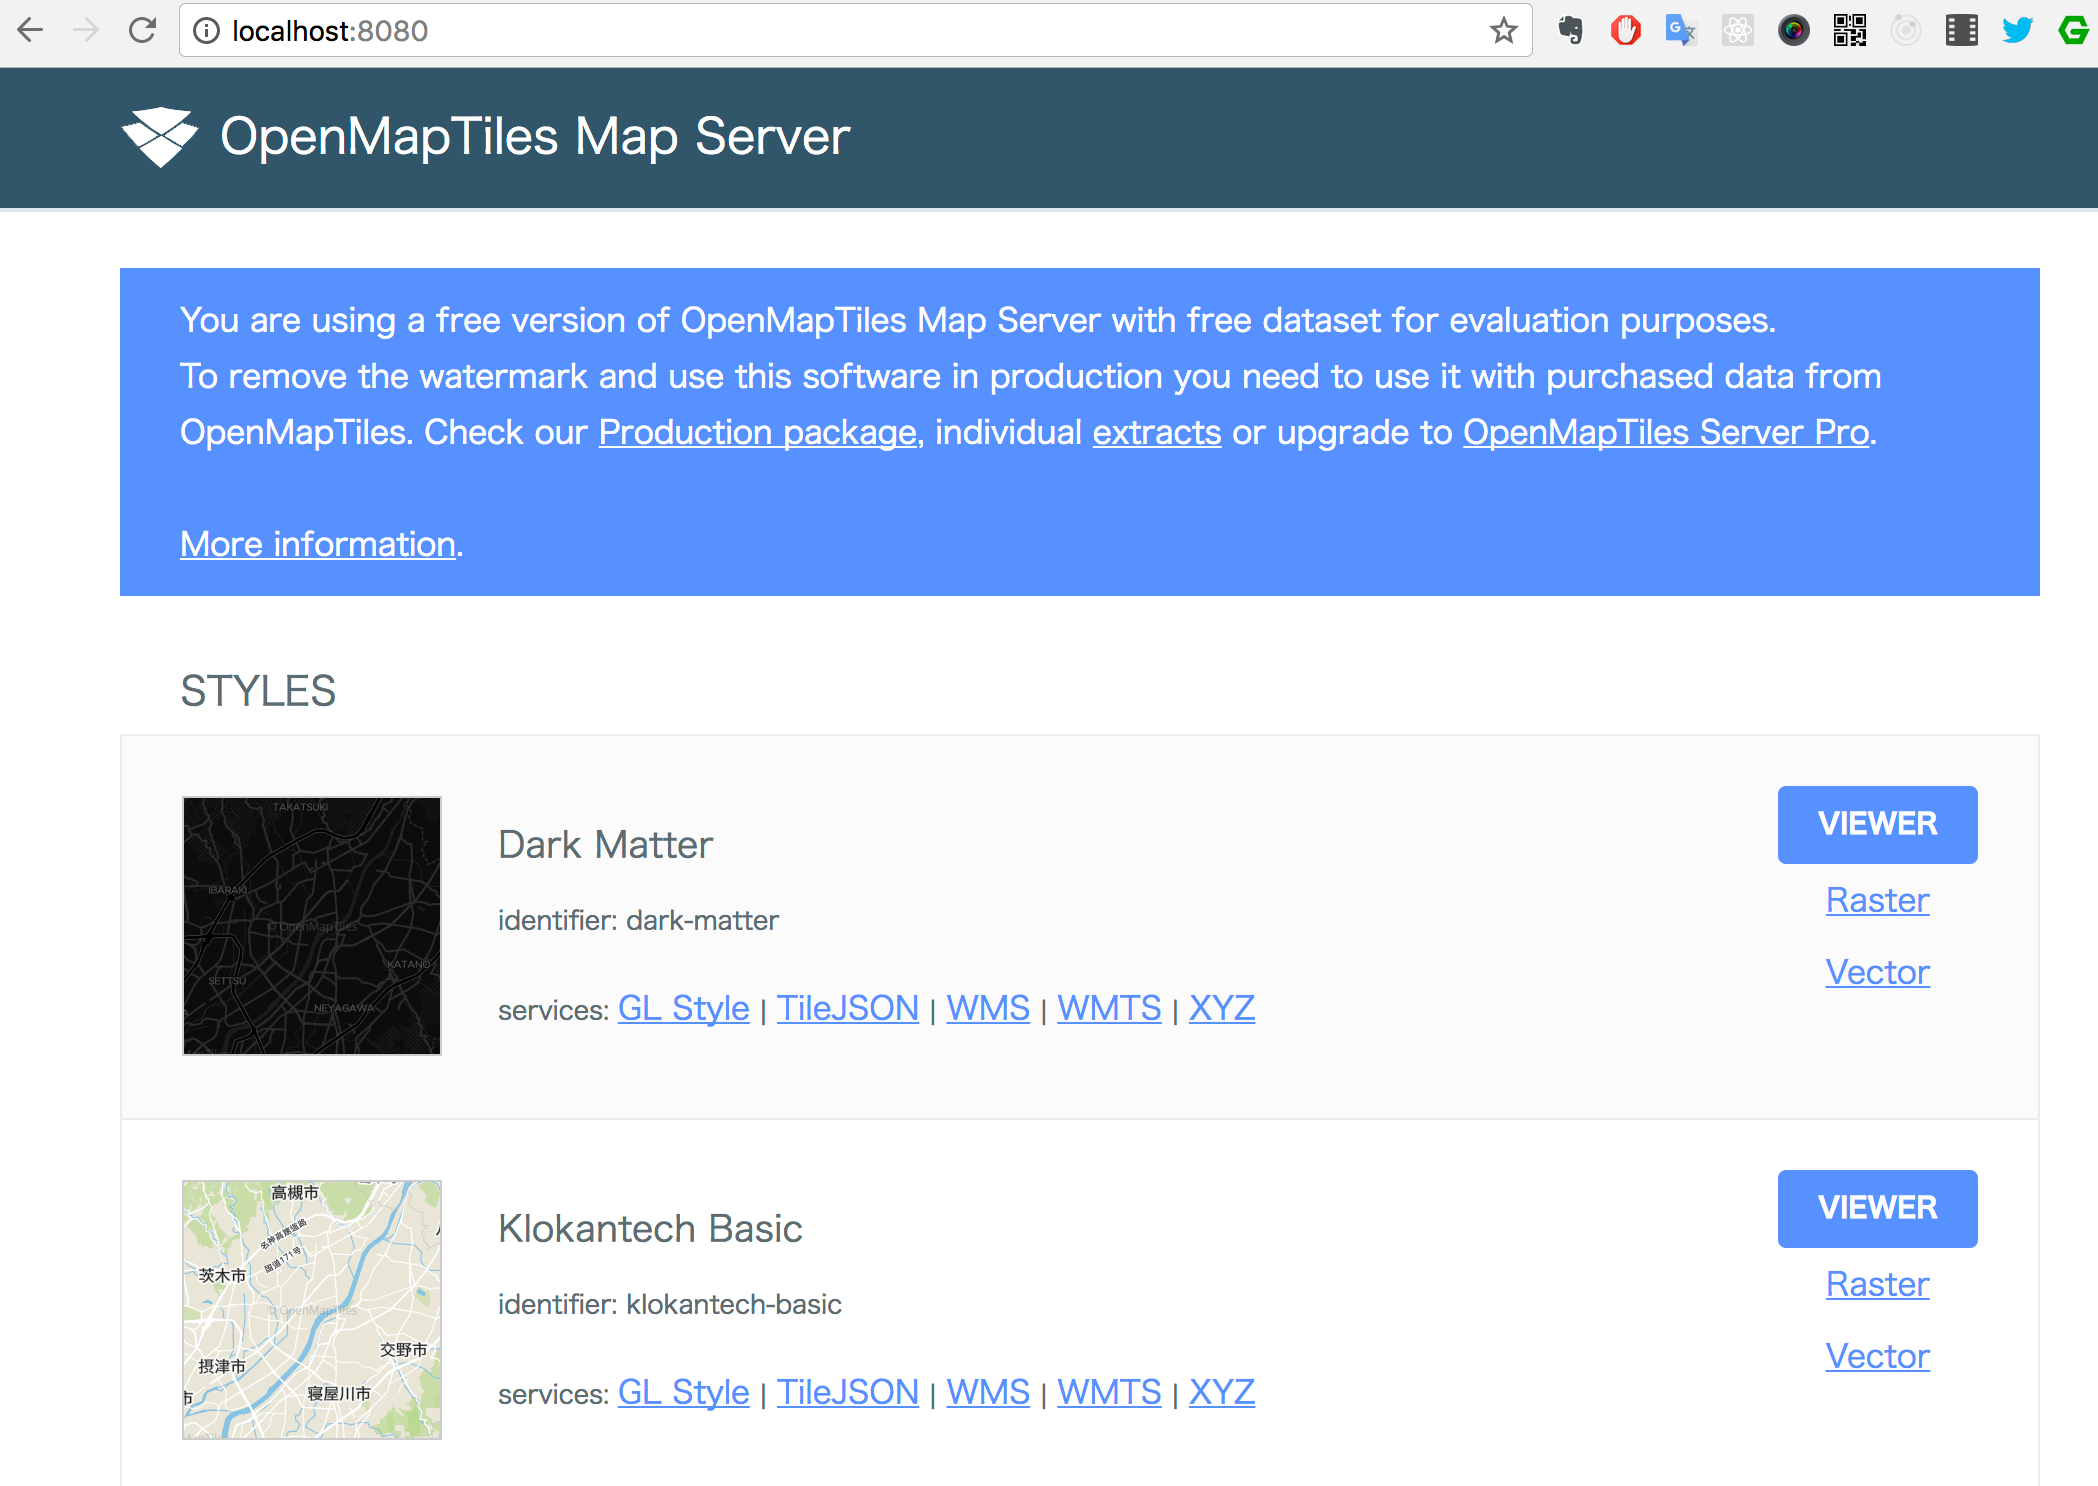 OpenMapTiles_Map_Server.png